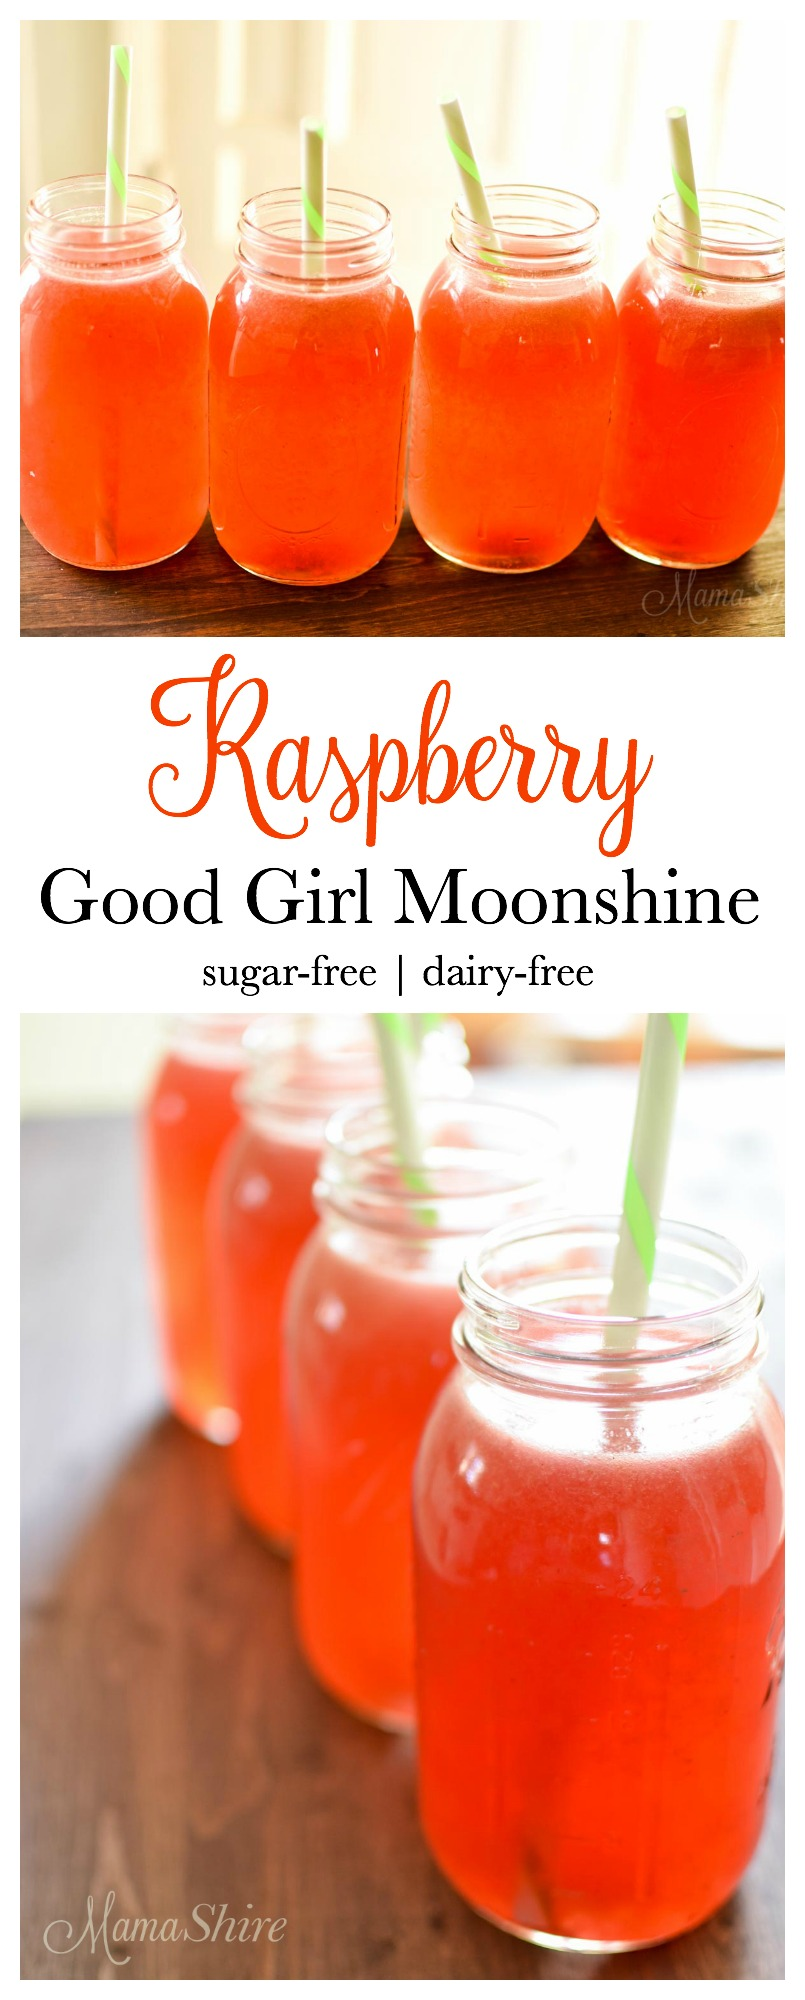 Raspberry Good Girl Moonshine